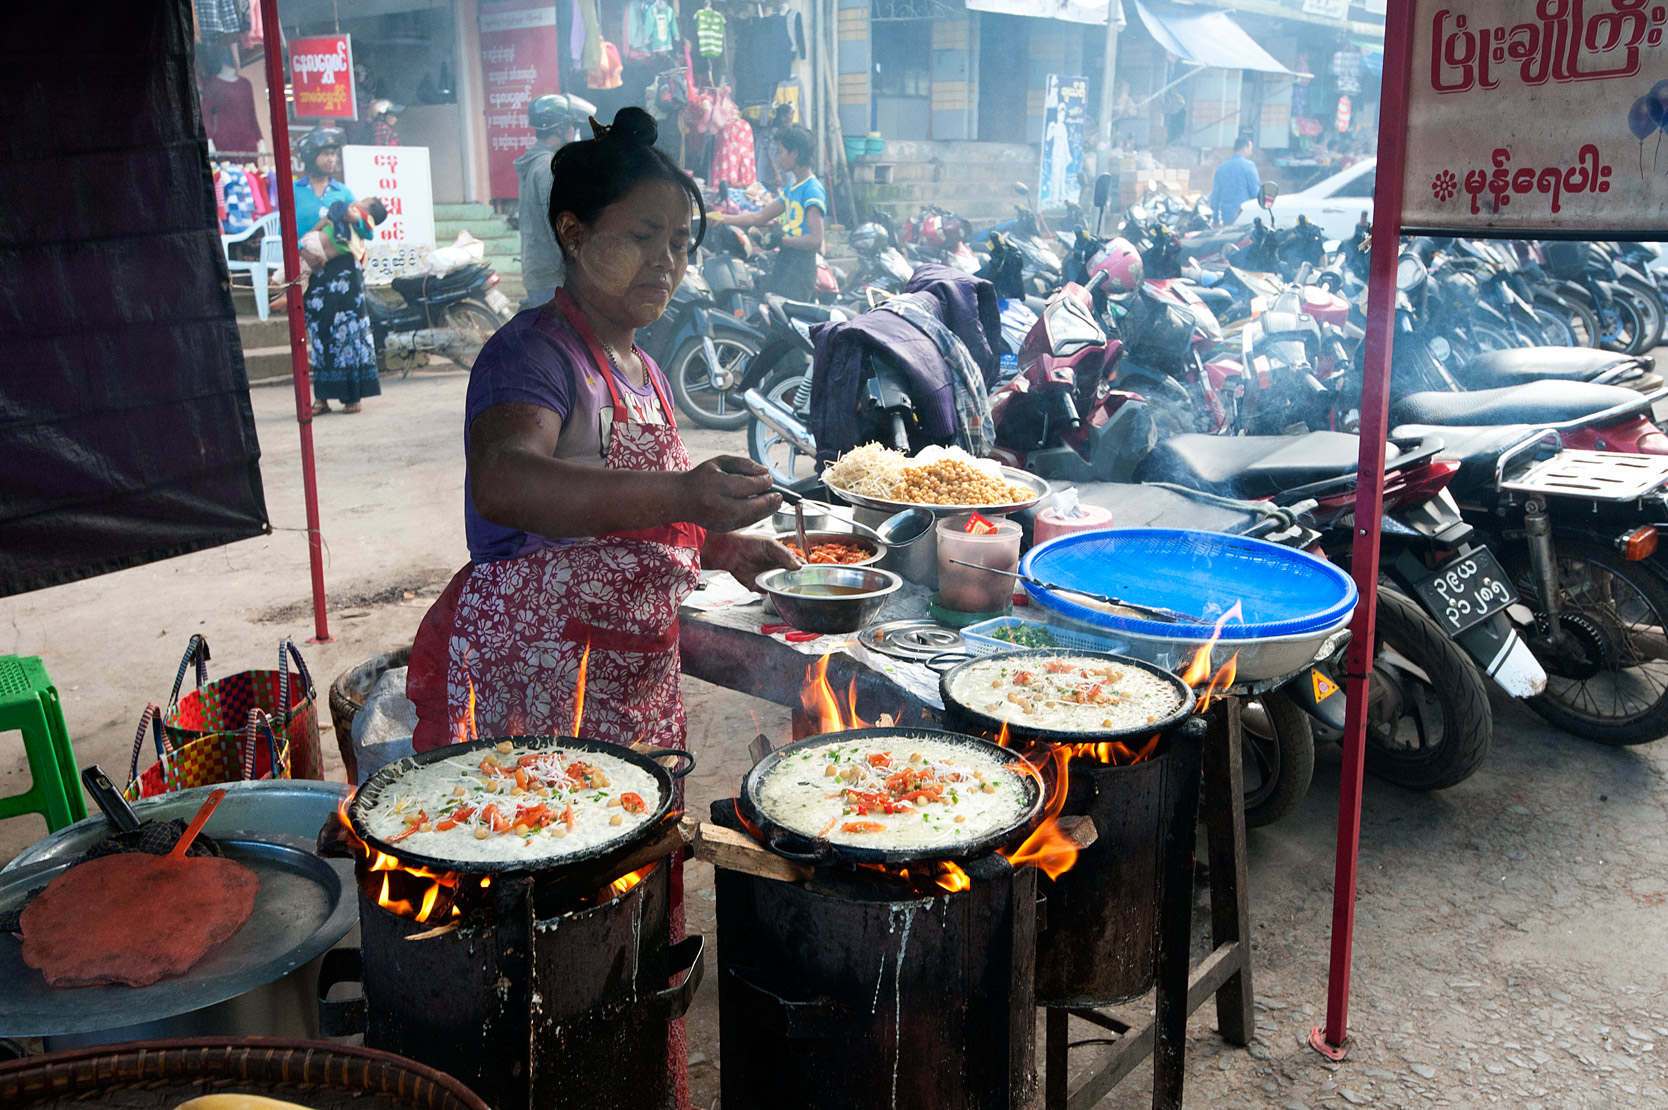 Woman frying rice pancakes with fillings on a street market fast food stall in Pyin Oo Lwyn, Mandalay Division, Myanmar.